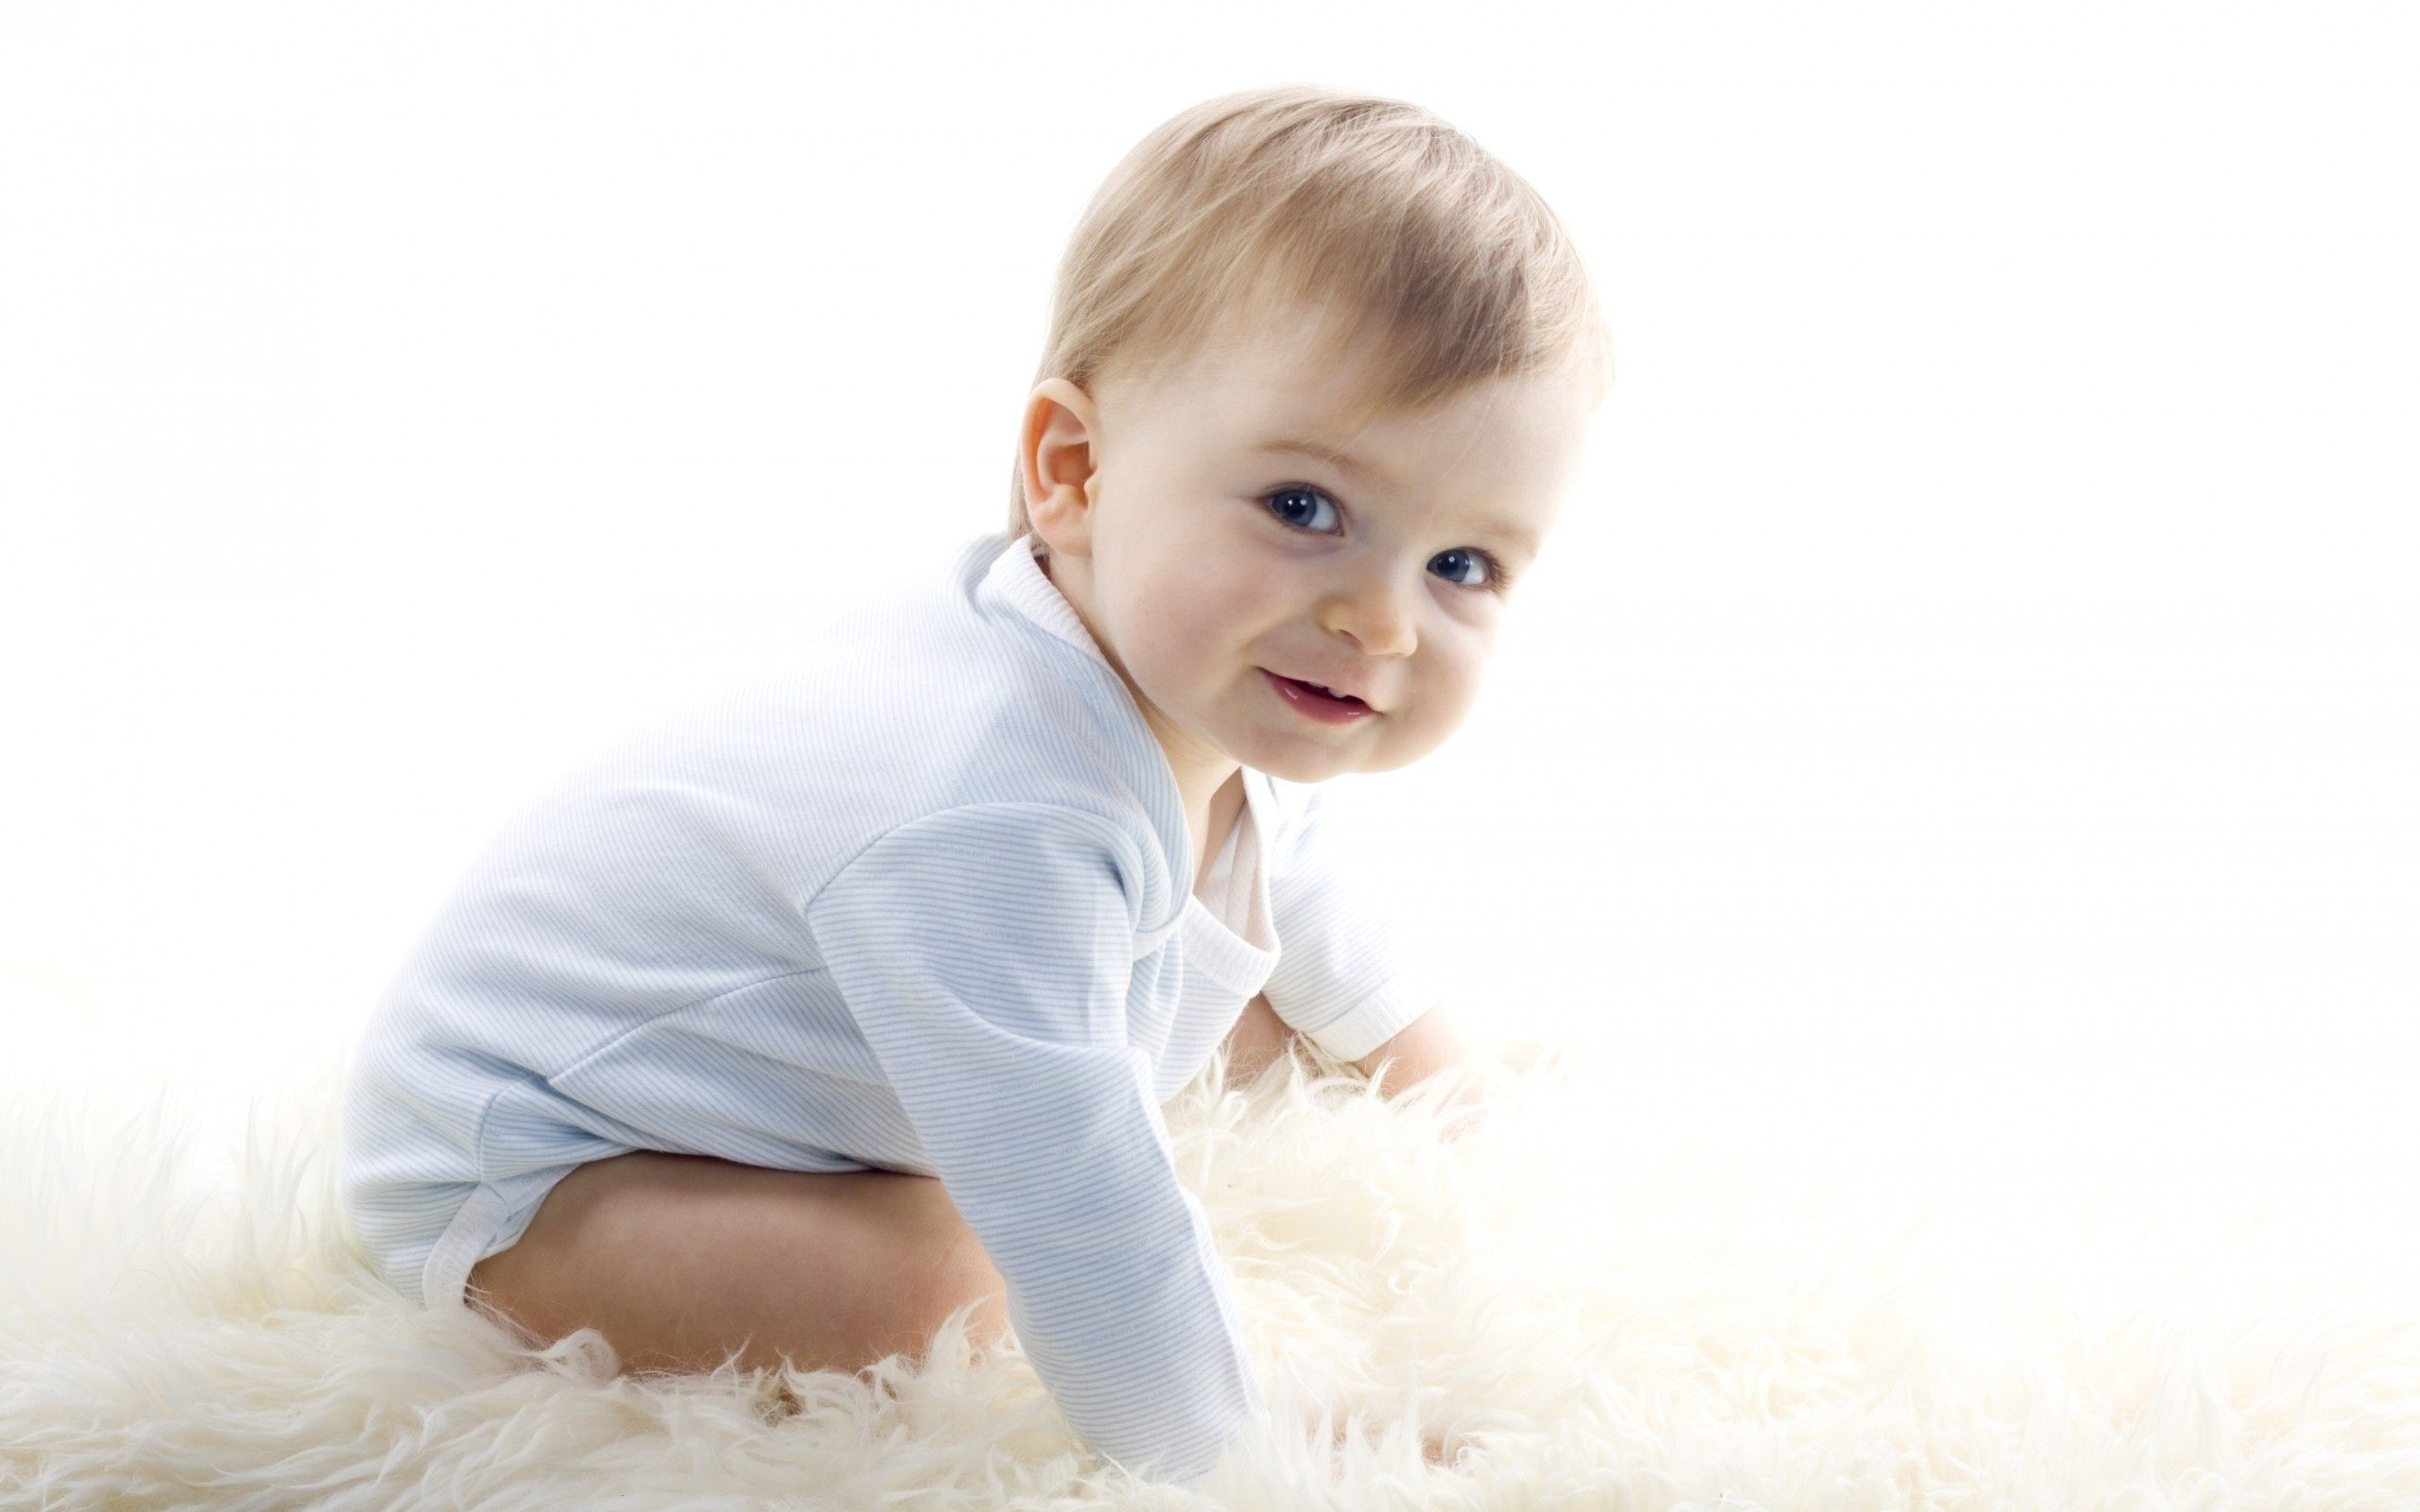 Cute Baby Boy Pictures Wallpapers (63+ Images